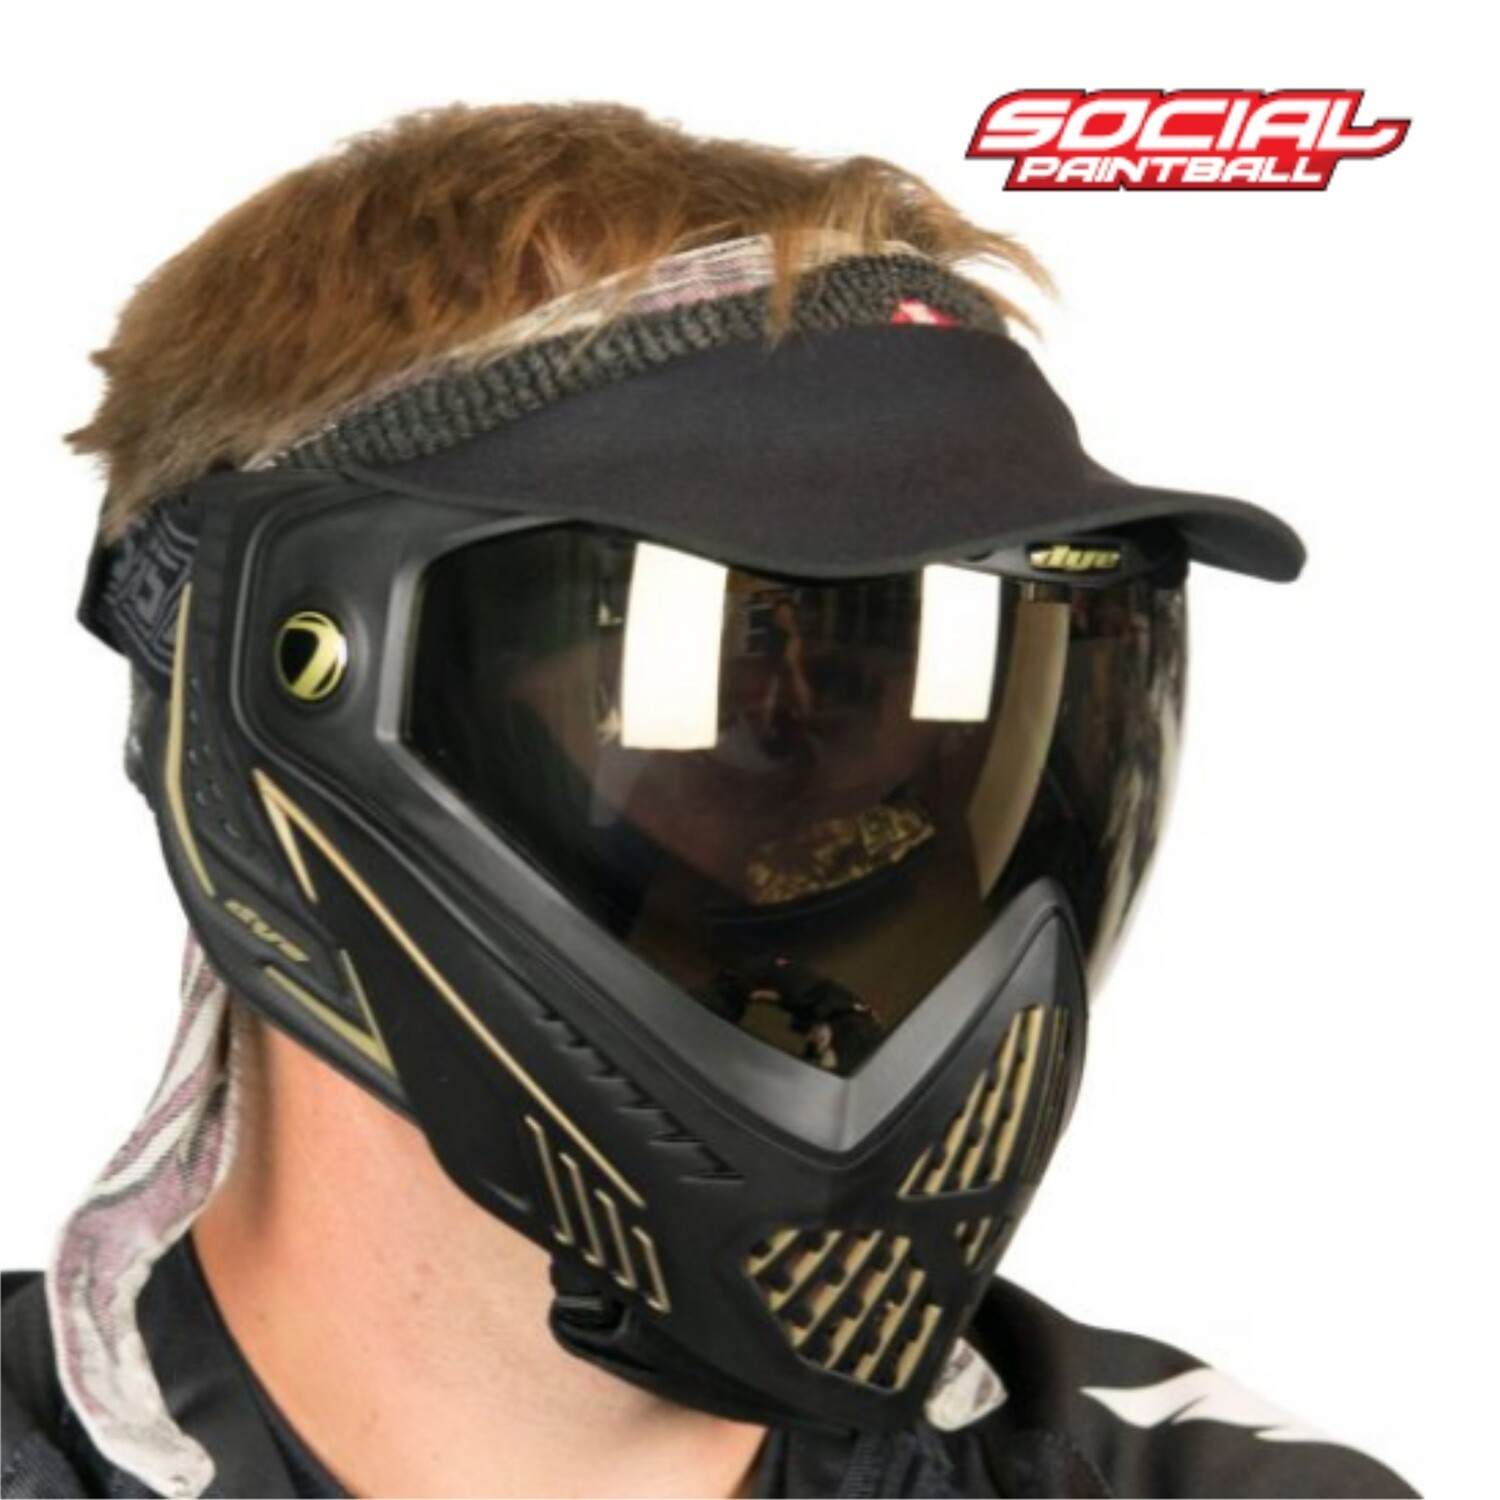 Social Paintball Vintage Duckbill Universal Paintball Visor - Black